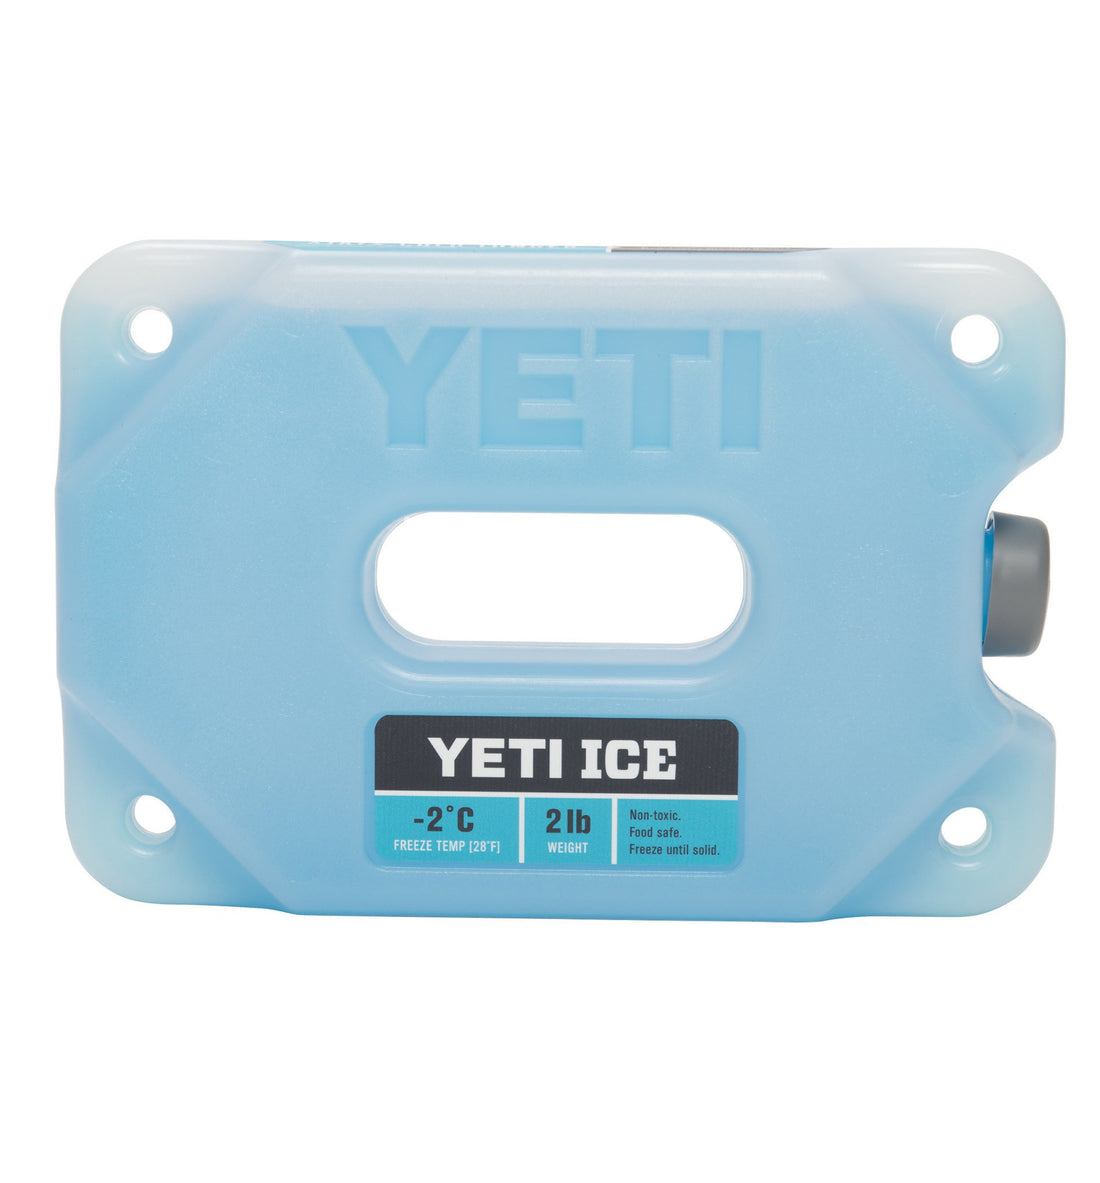 Yeti Ice, 2 lb 2C - Outdoor Living/Travel - Iron and Resin